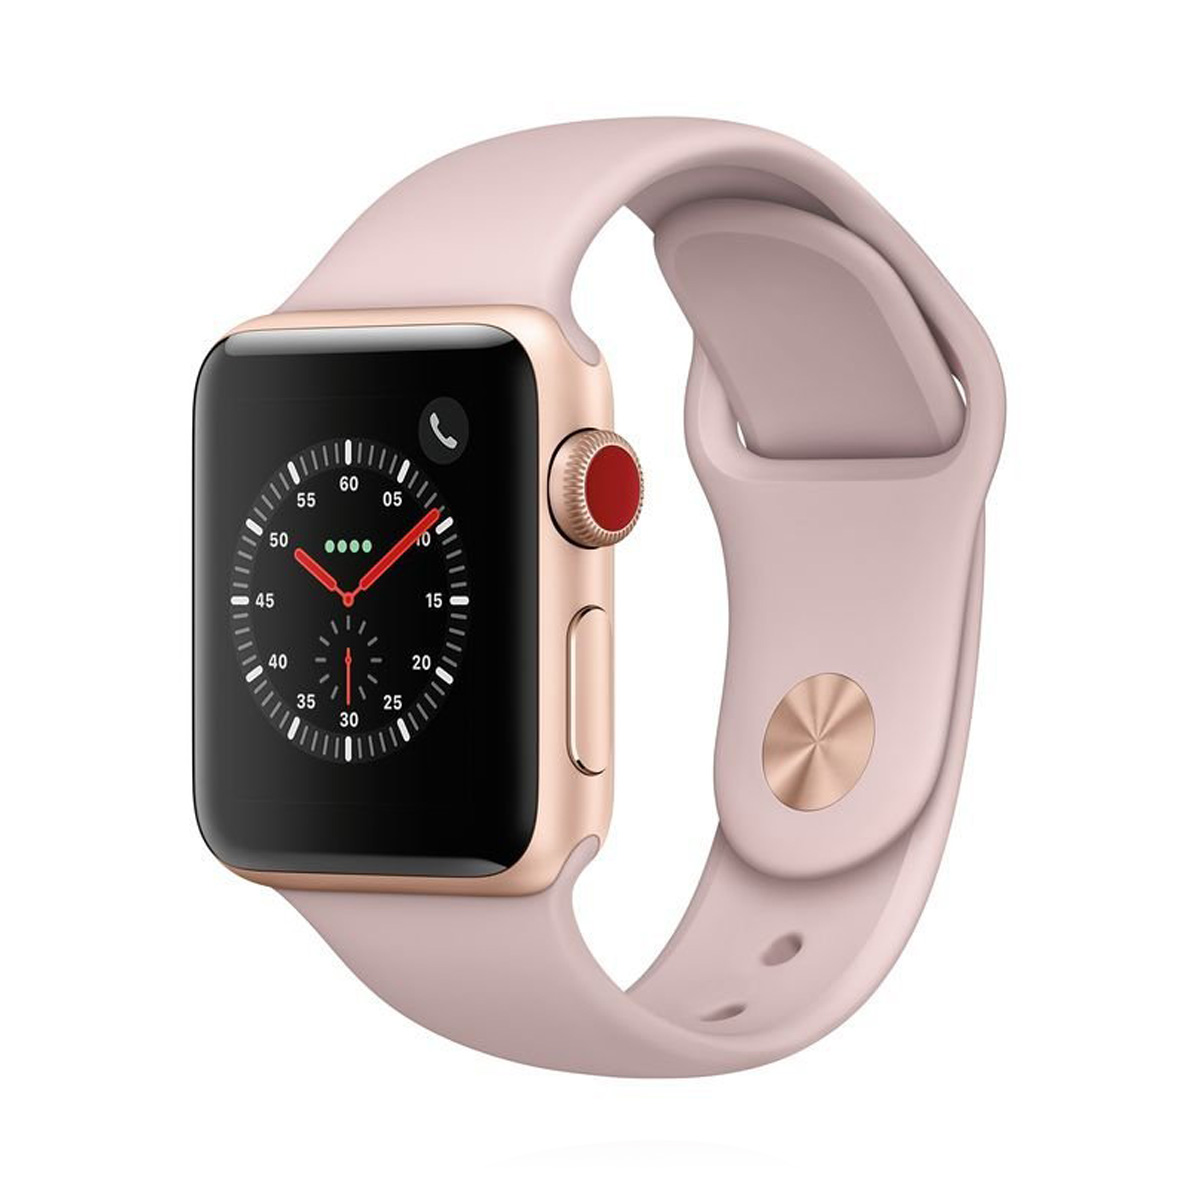 Apple WATCH Series 3 GPS 38mm goldenes Aluminiumgehäuse mit pink sandfarbenem Sportarmband